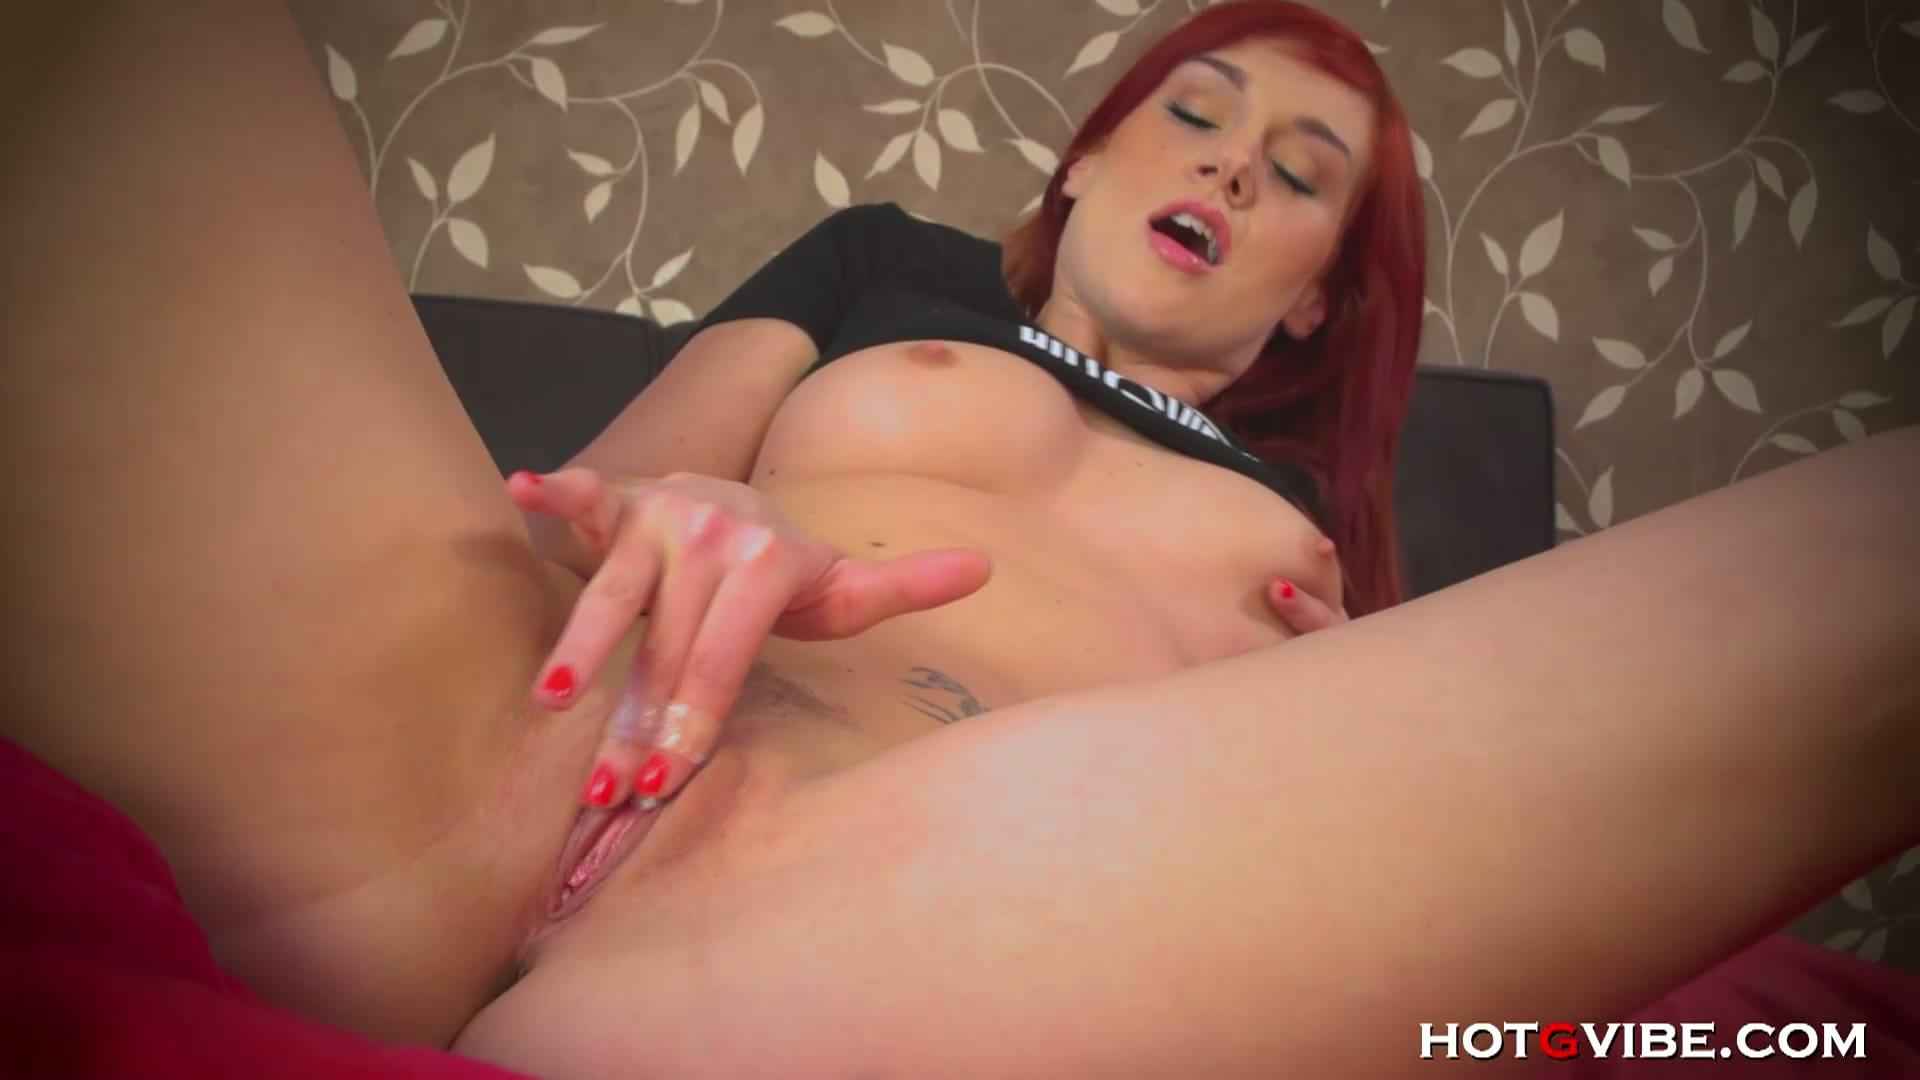 Busty red head masturbating